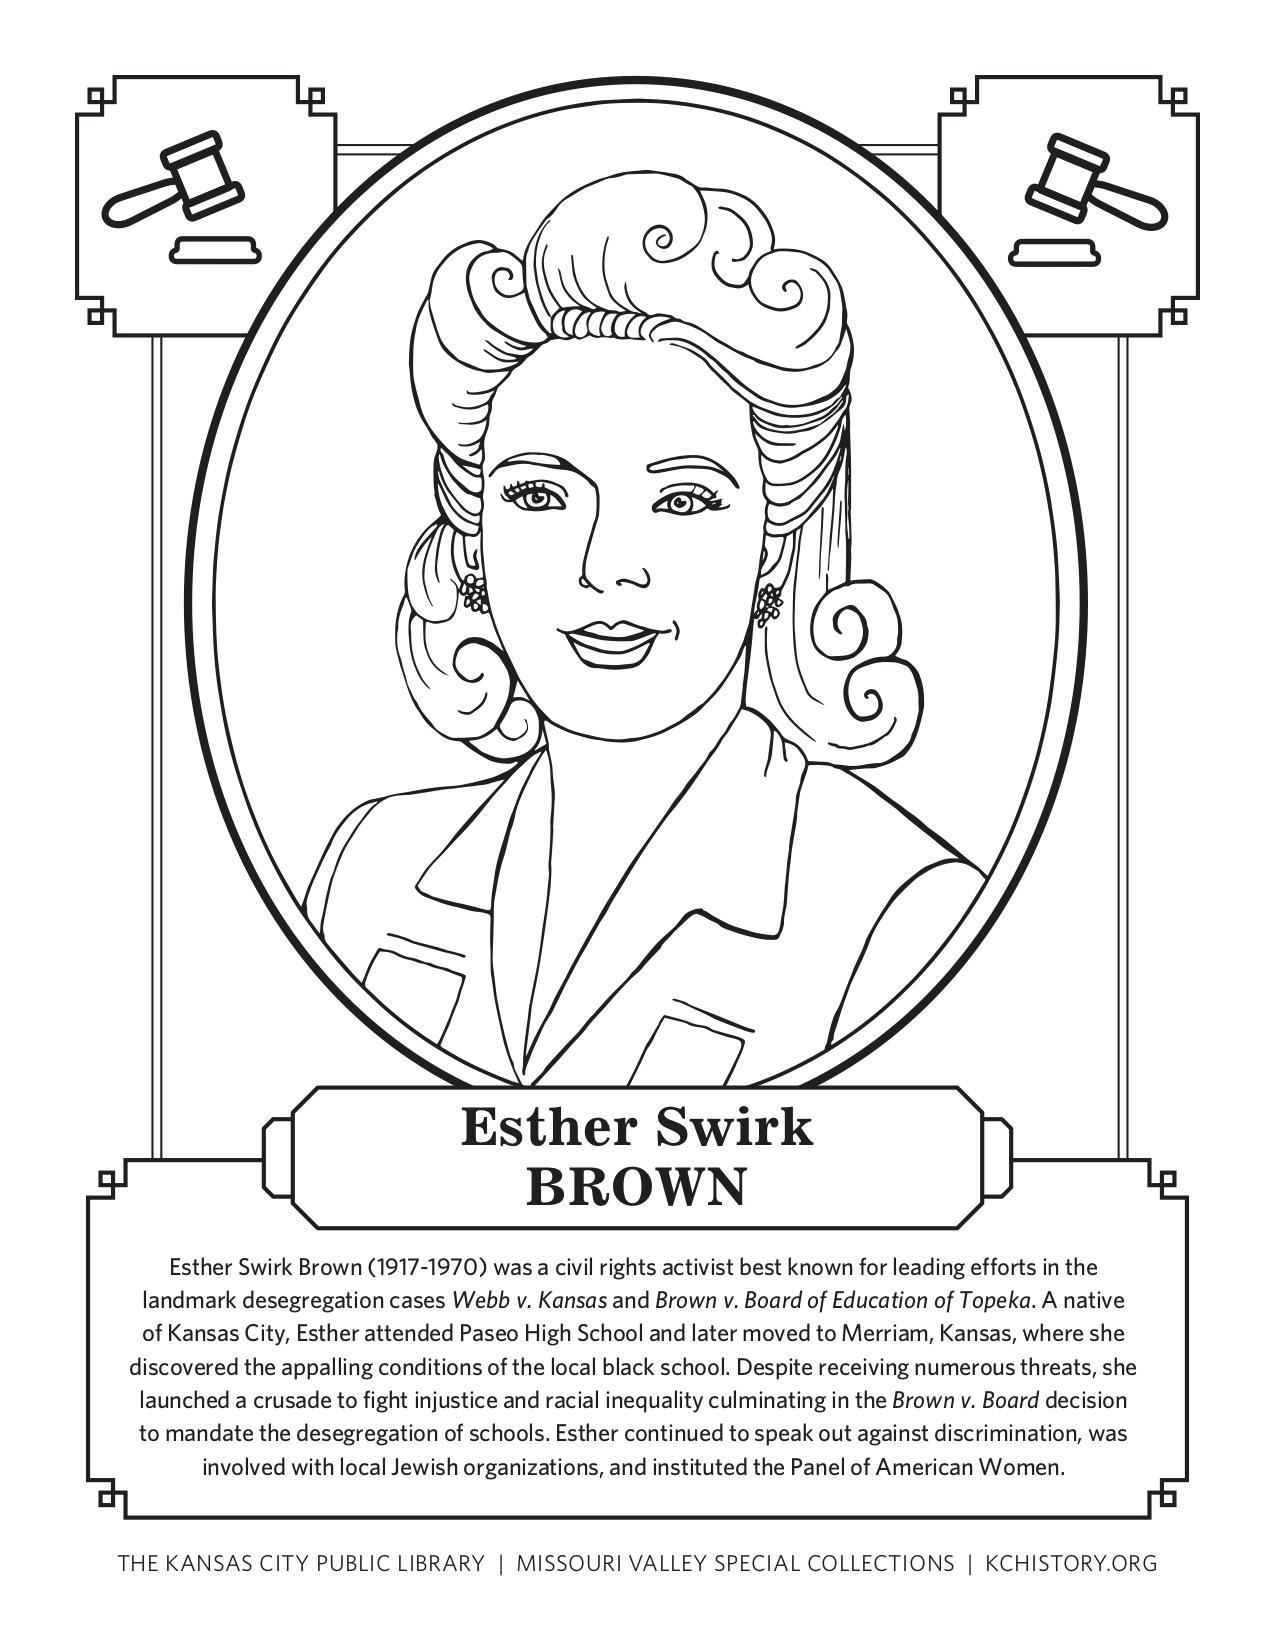 Brown-EstherSwirk_MVSC_coloring JPEG.jpg